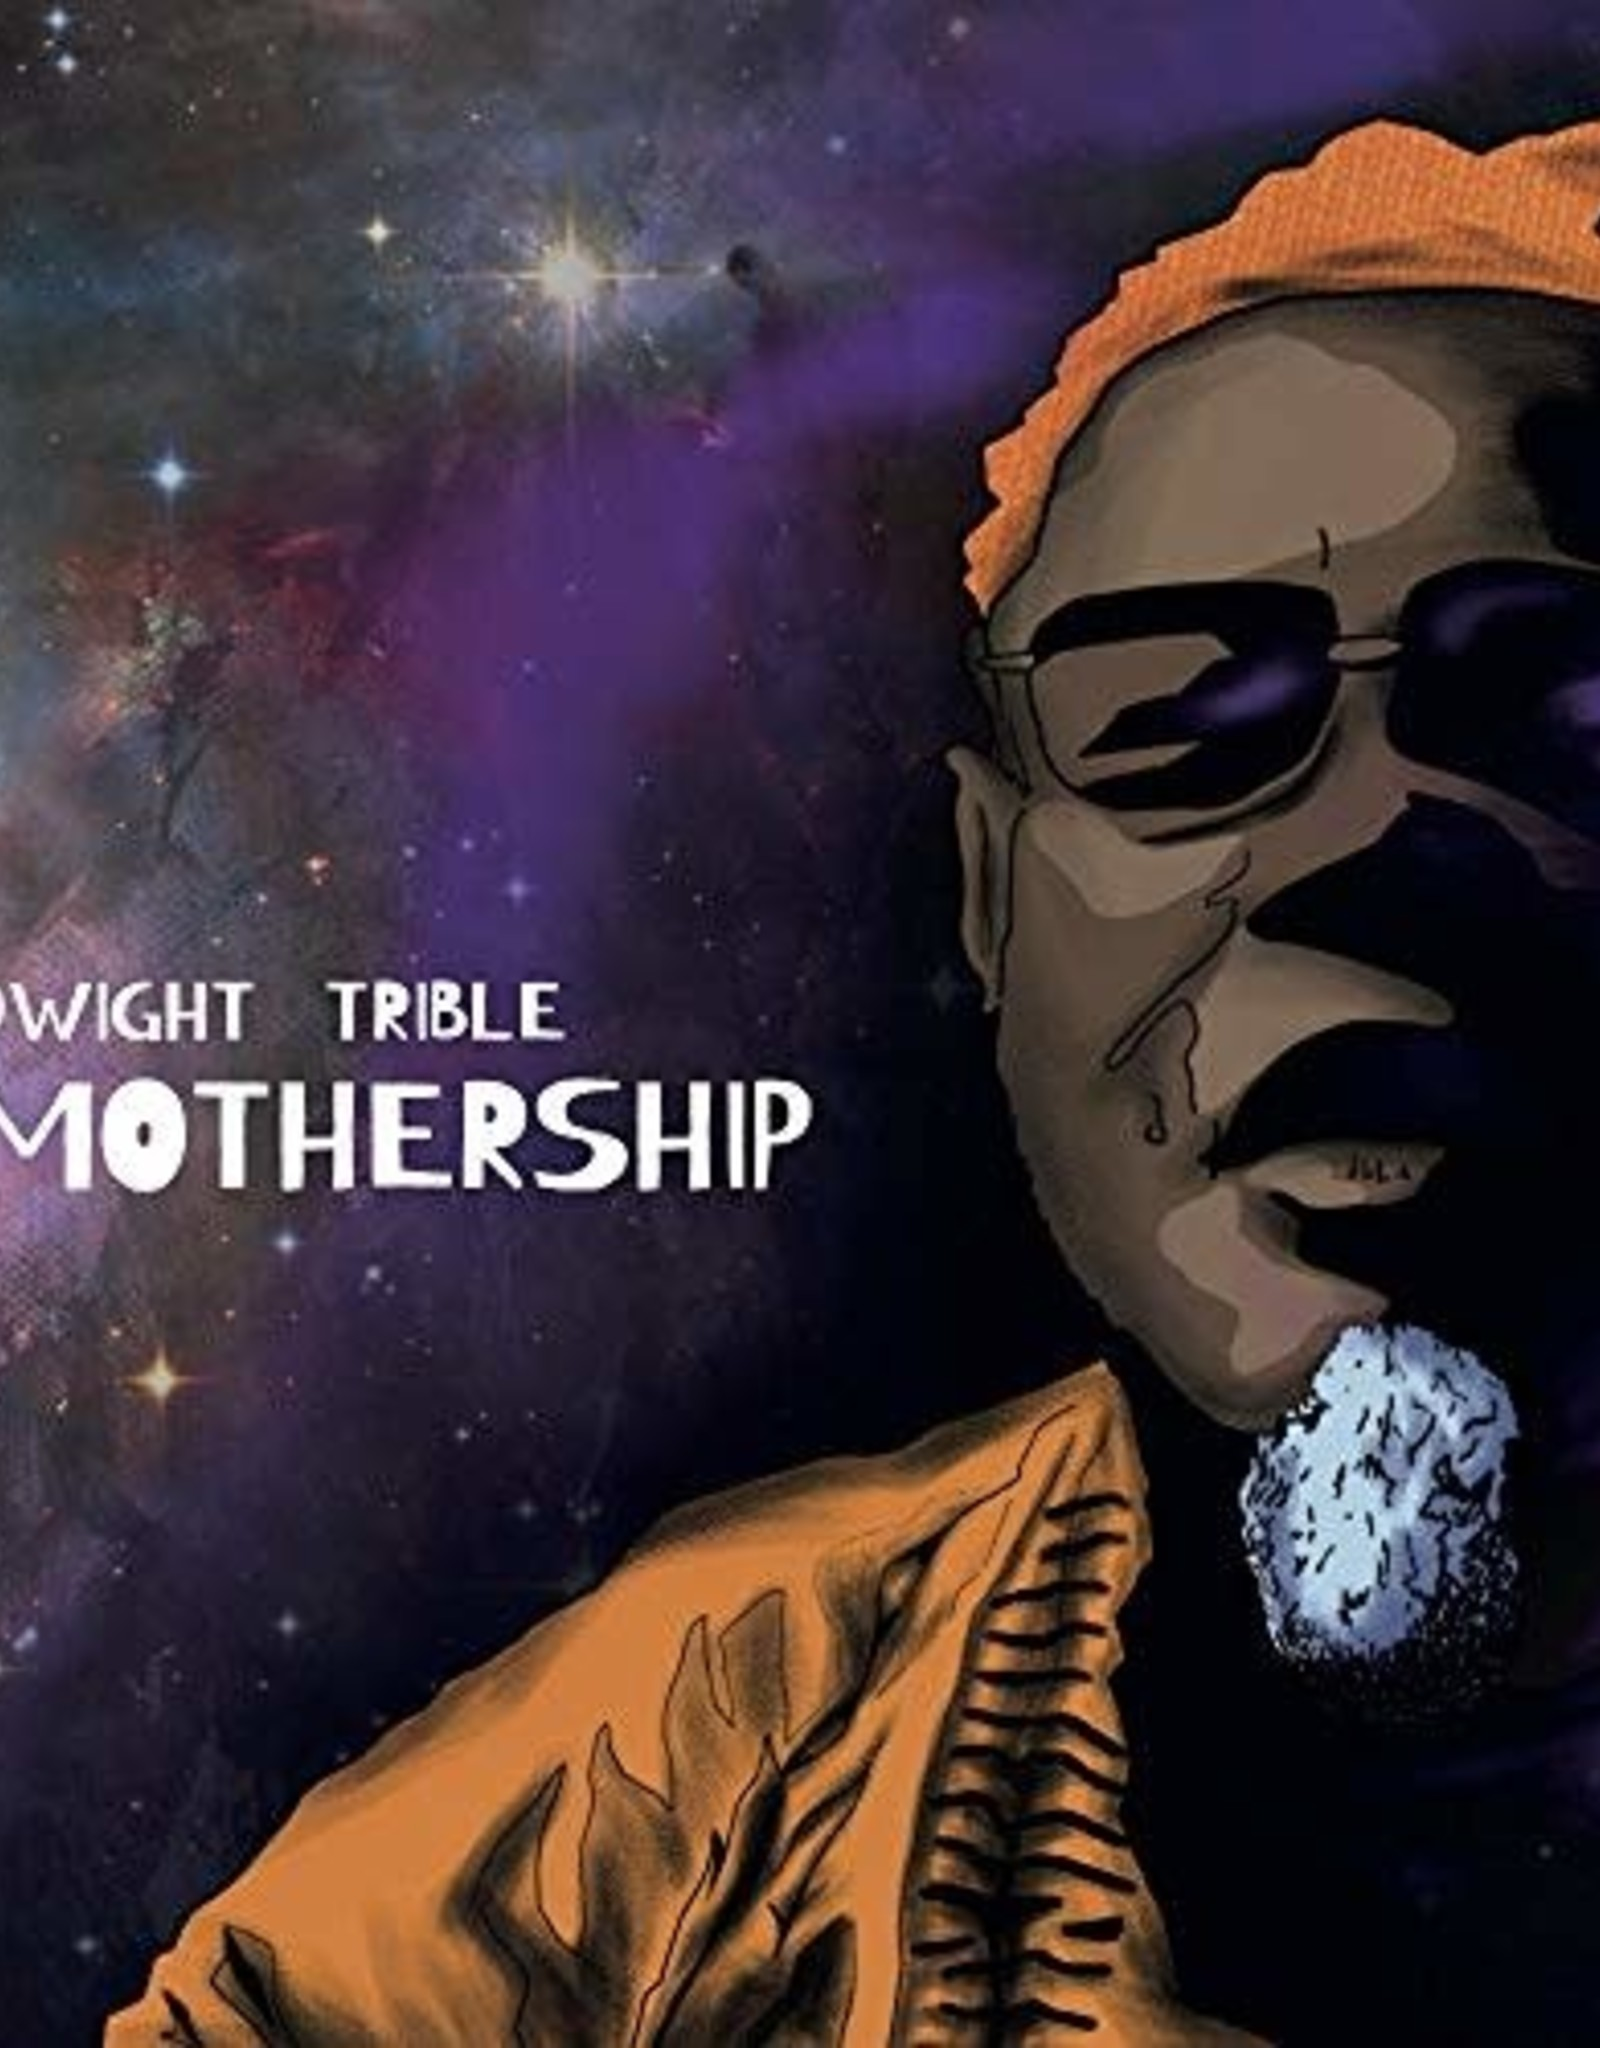 Dwight Trible - Mothership (Indie Only / Cosmic Vinyl)